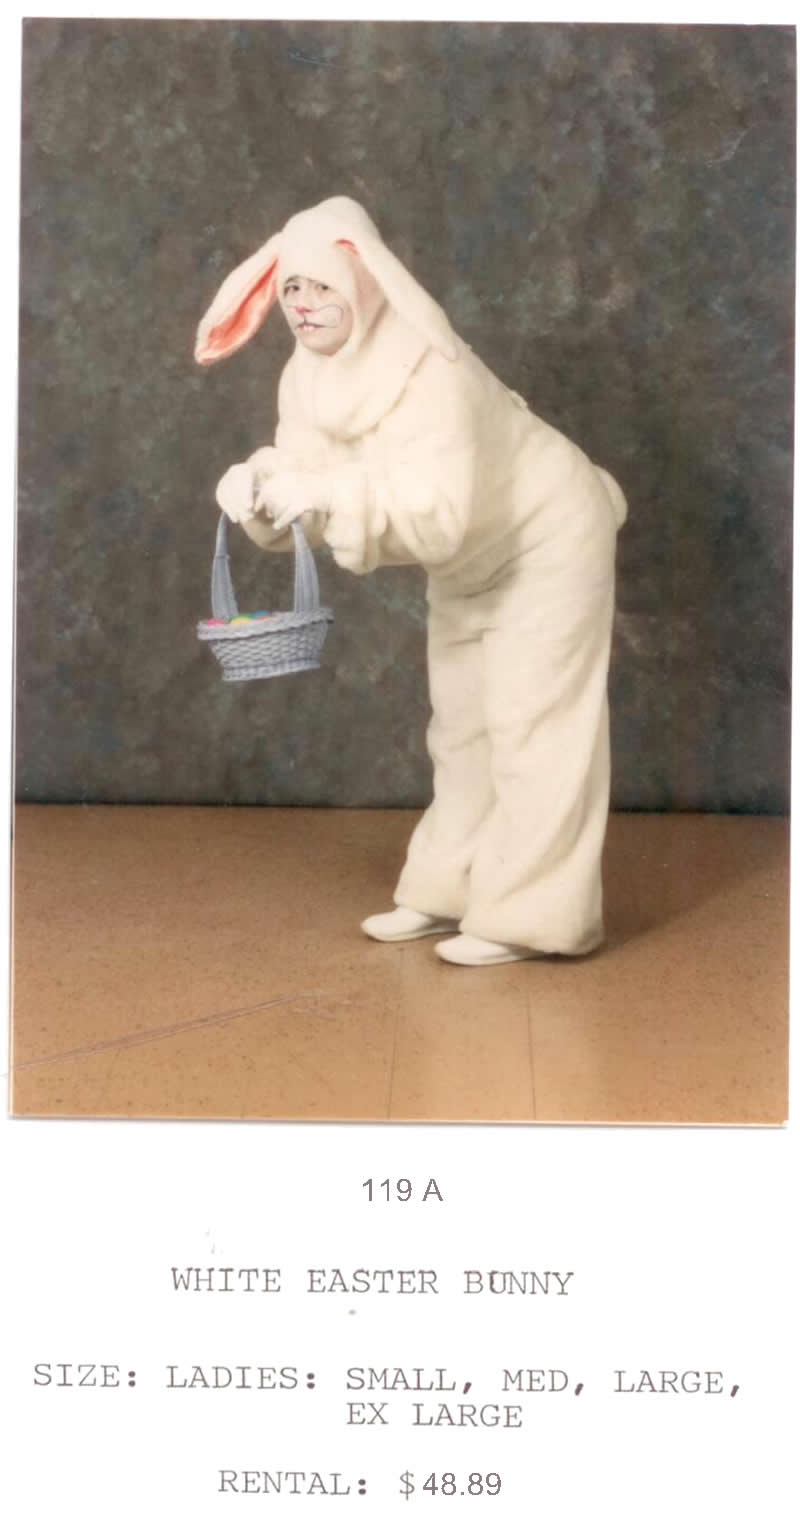 EASTER BUNNY - WHITE